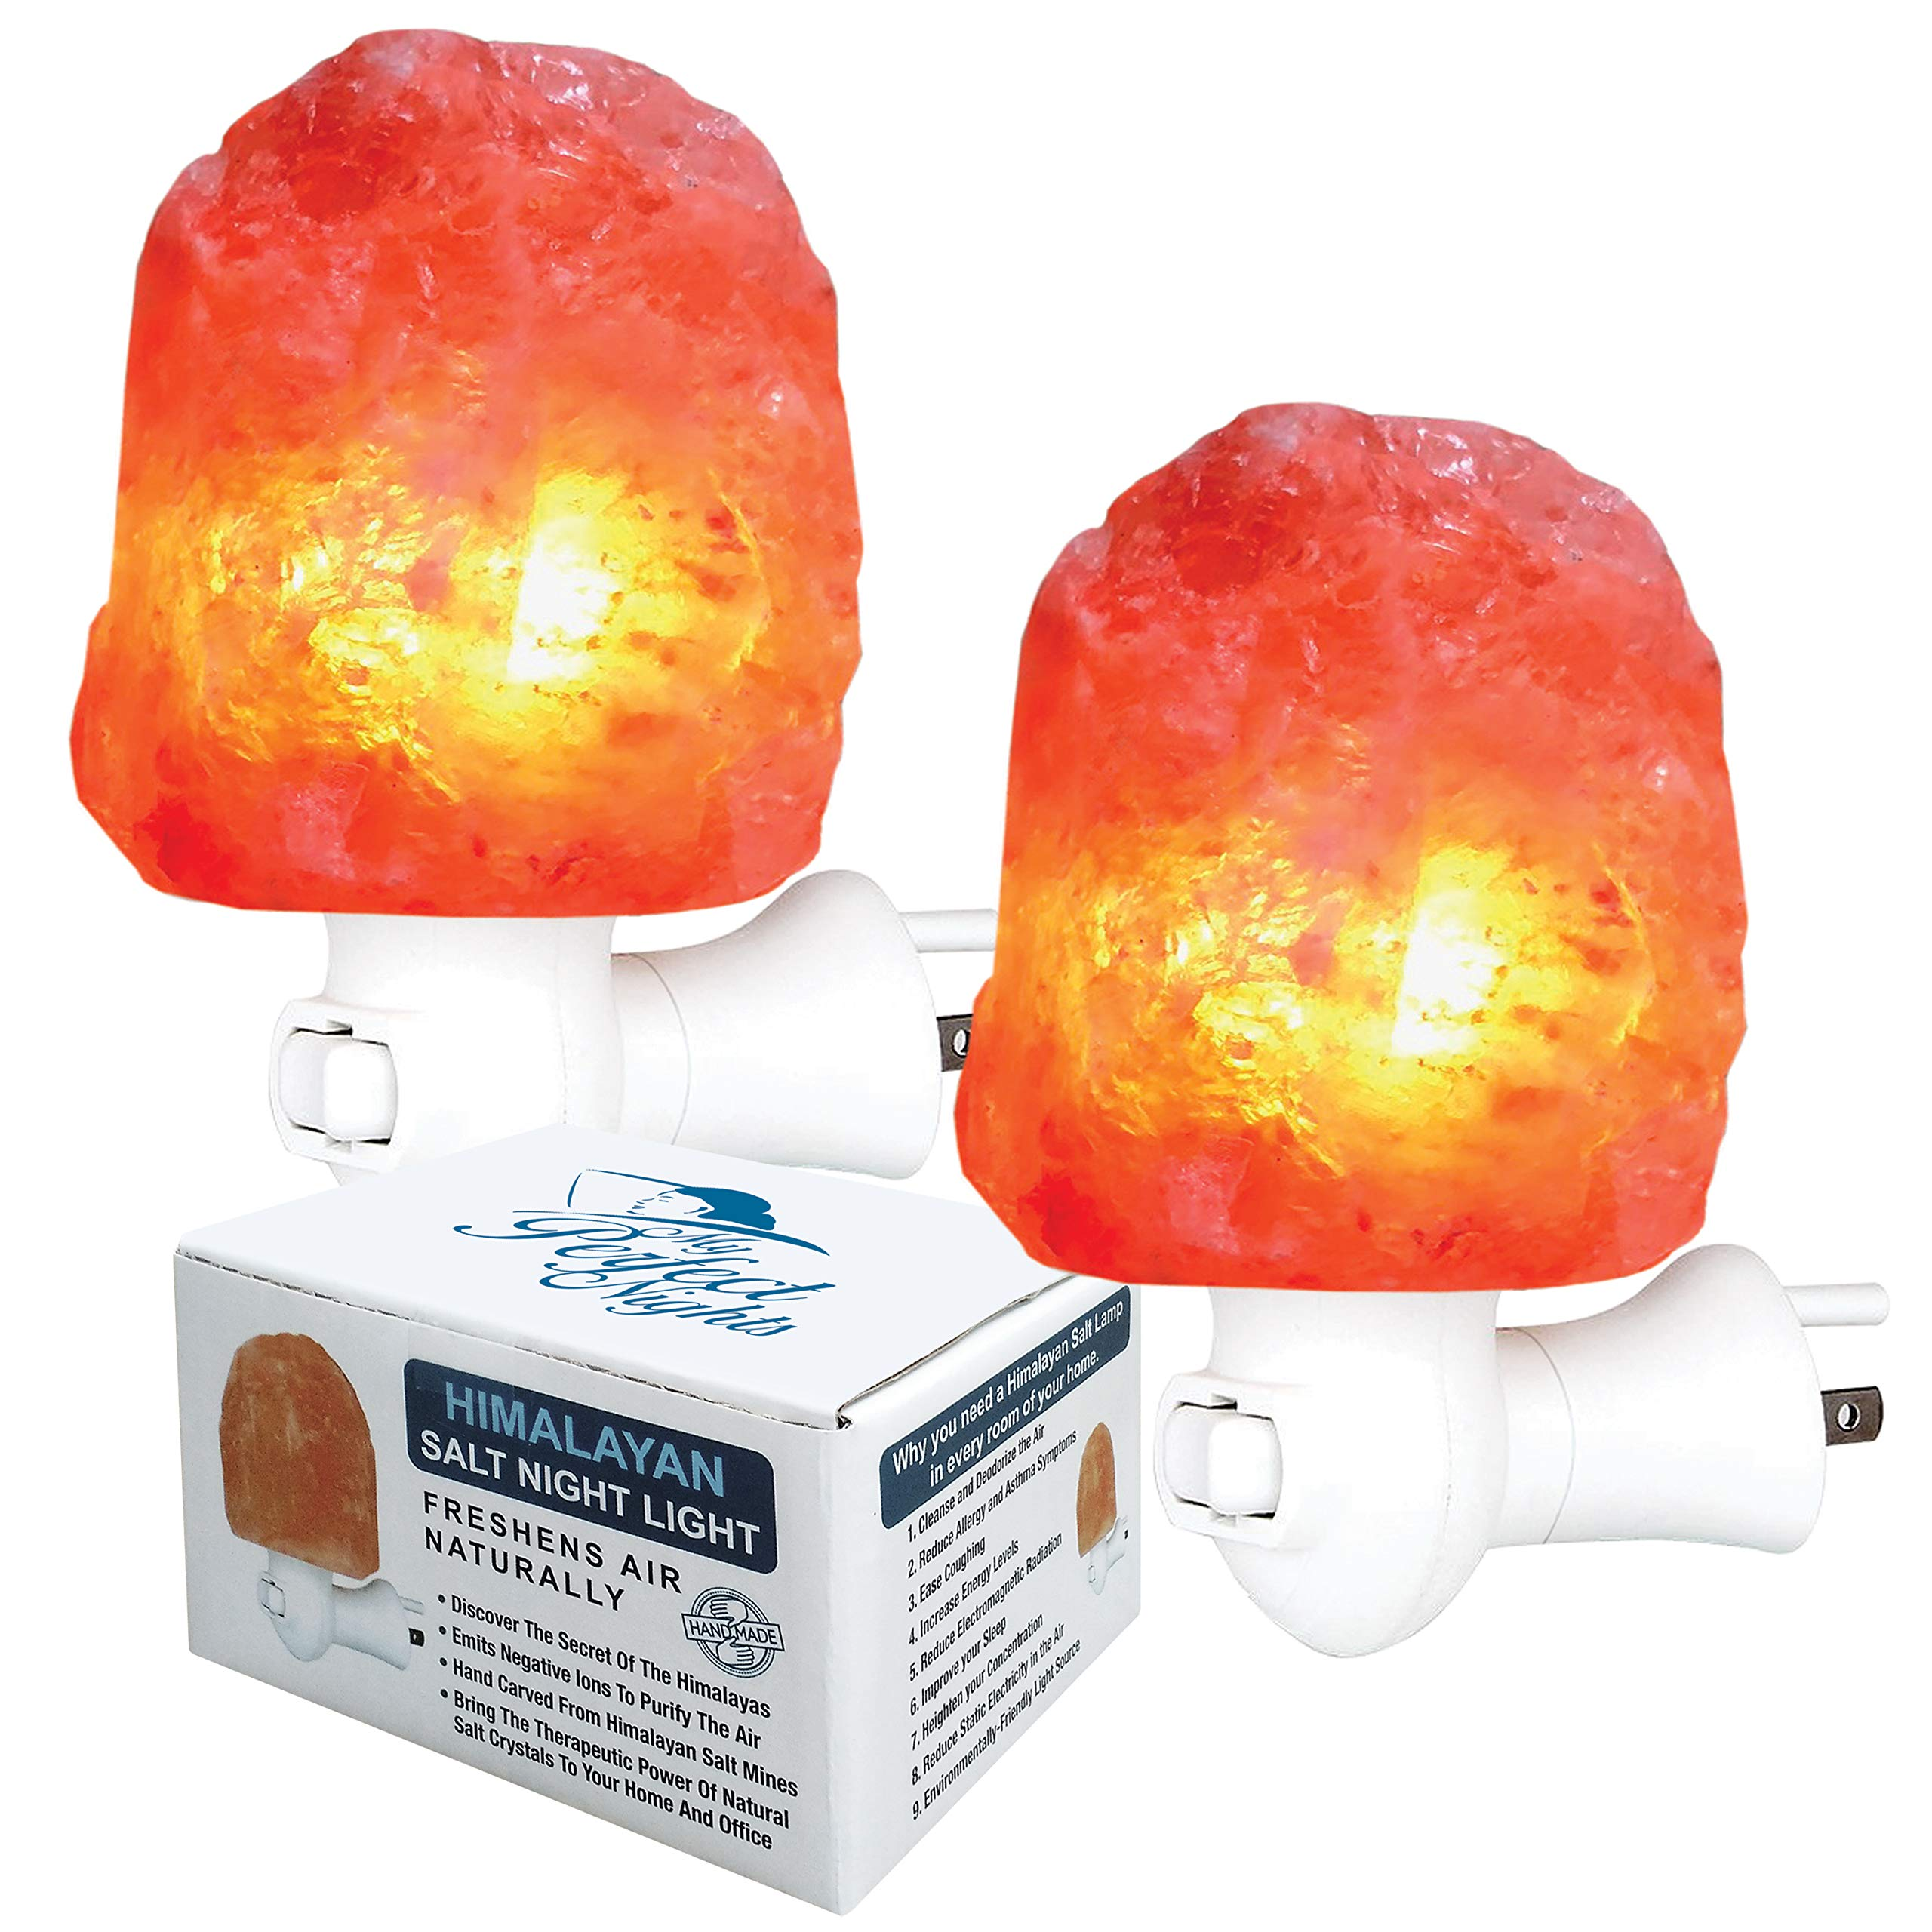 My Perfect Nights Himalayan Rock Salt Lamp Night Light Natural Hand Carved Pure Authentic Pink Salt Crystals from Pakistan use in Bedroom Family Room Hallway Office (2 Pack) by My Perfect Nights (Image #1)